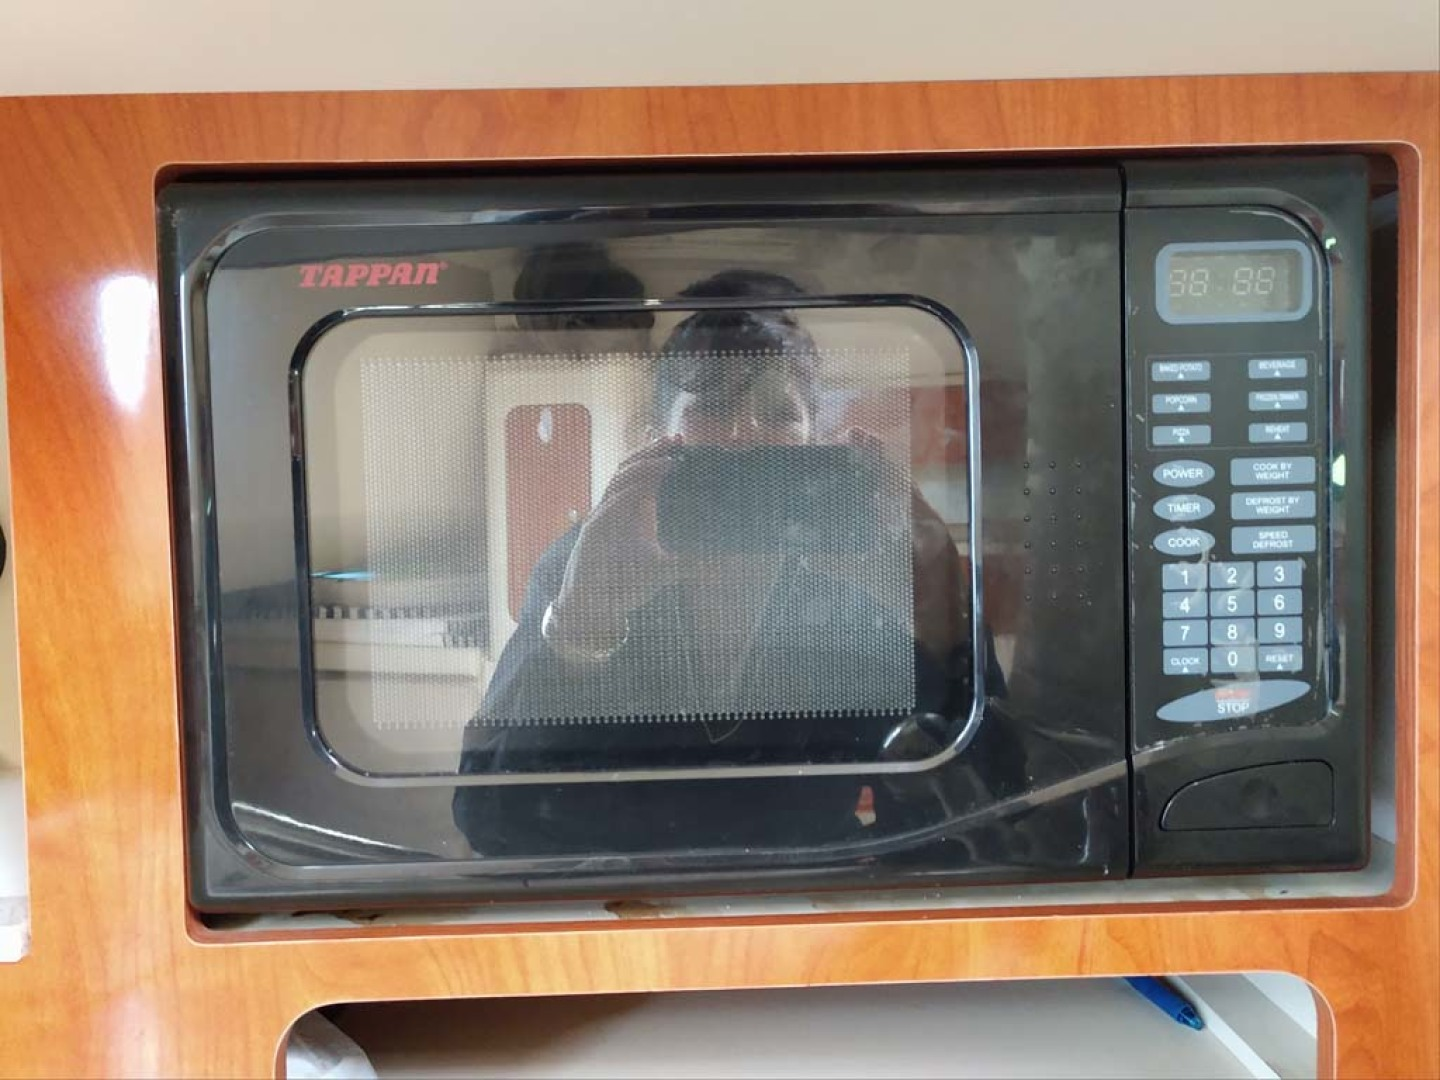 Larson-Cabrio 370 2007-My Tye XII Wiscasset-Maine-United States-Tappan Microwave-1174506 | Thumbnail